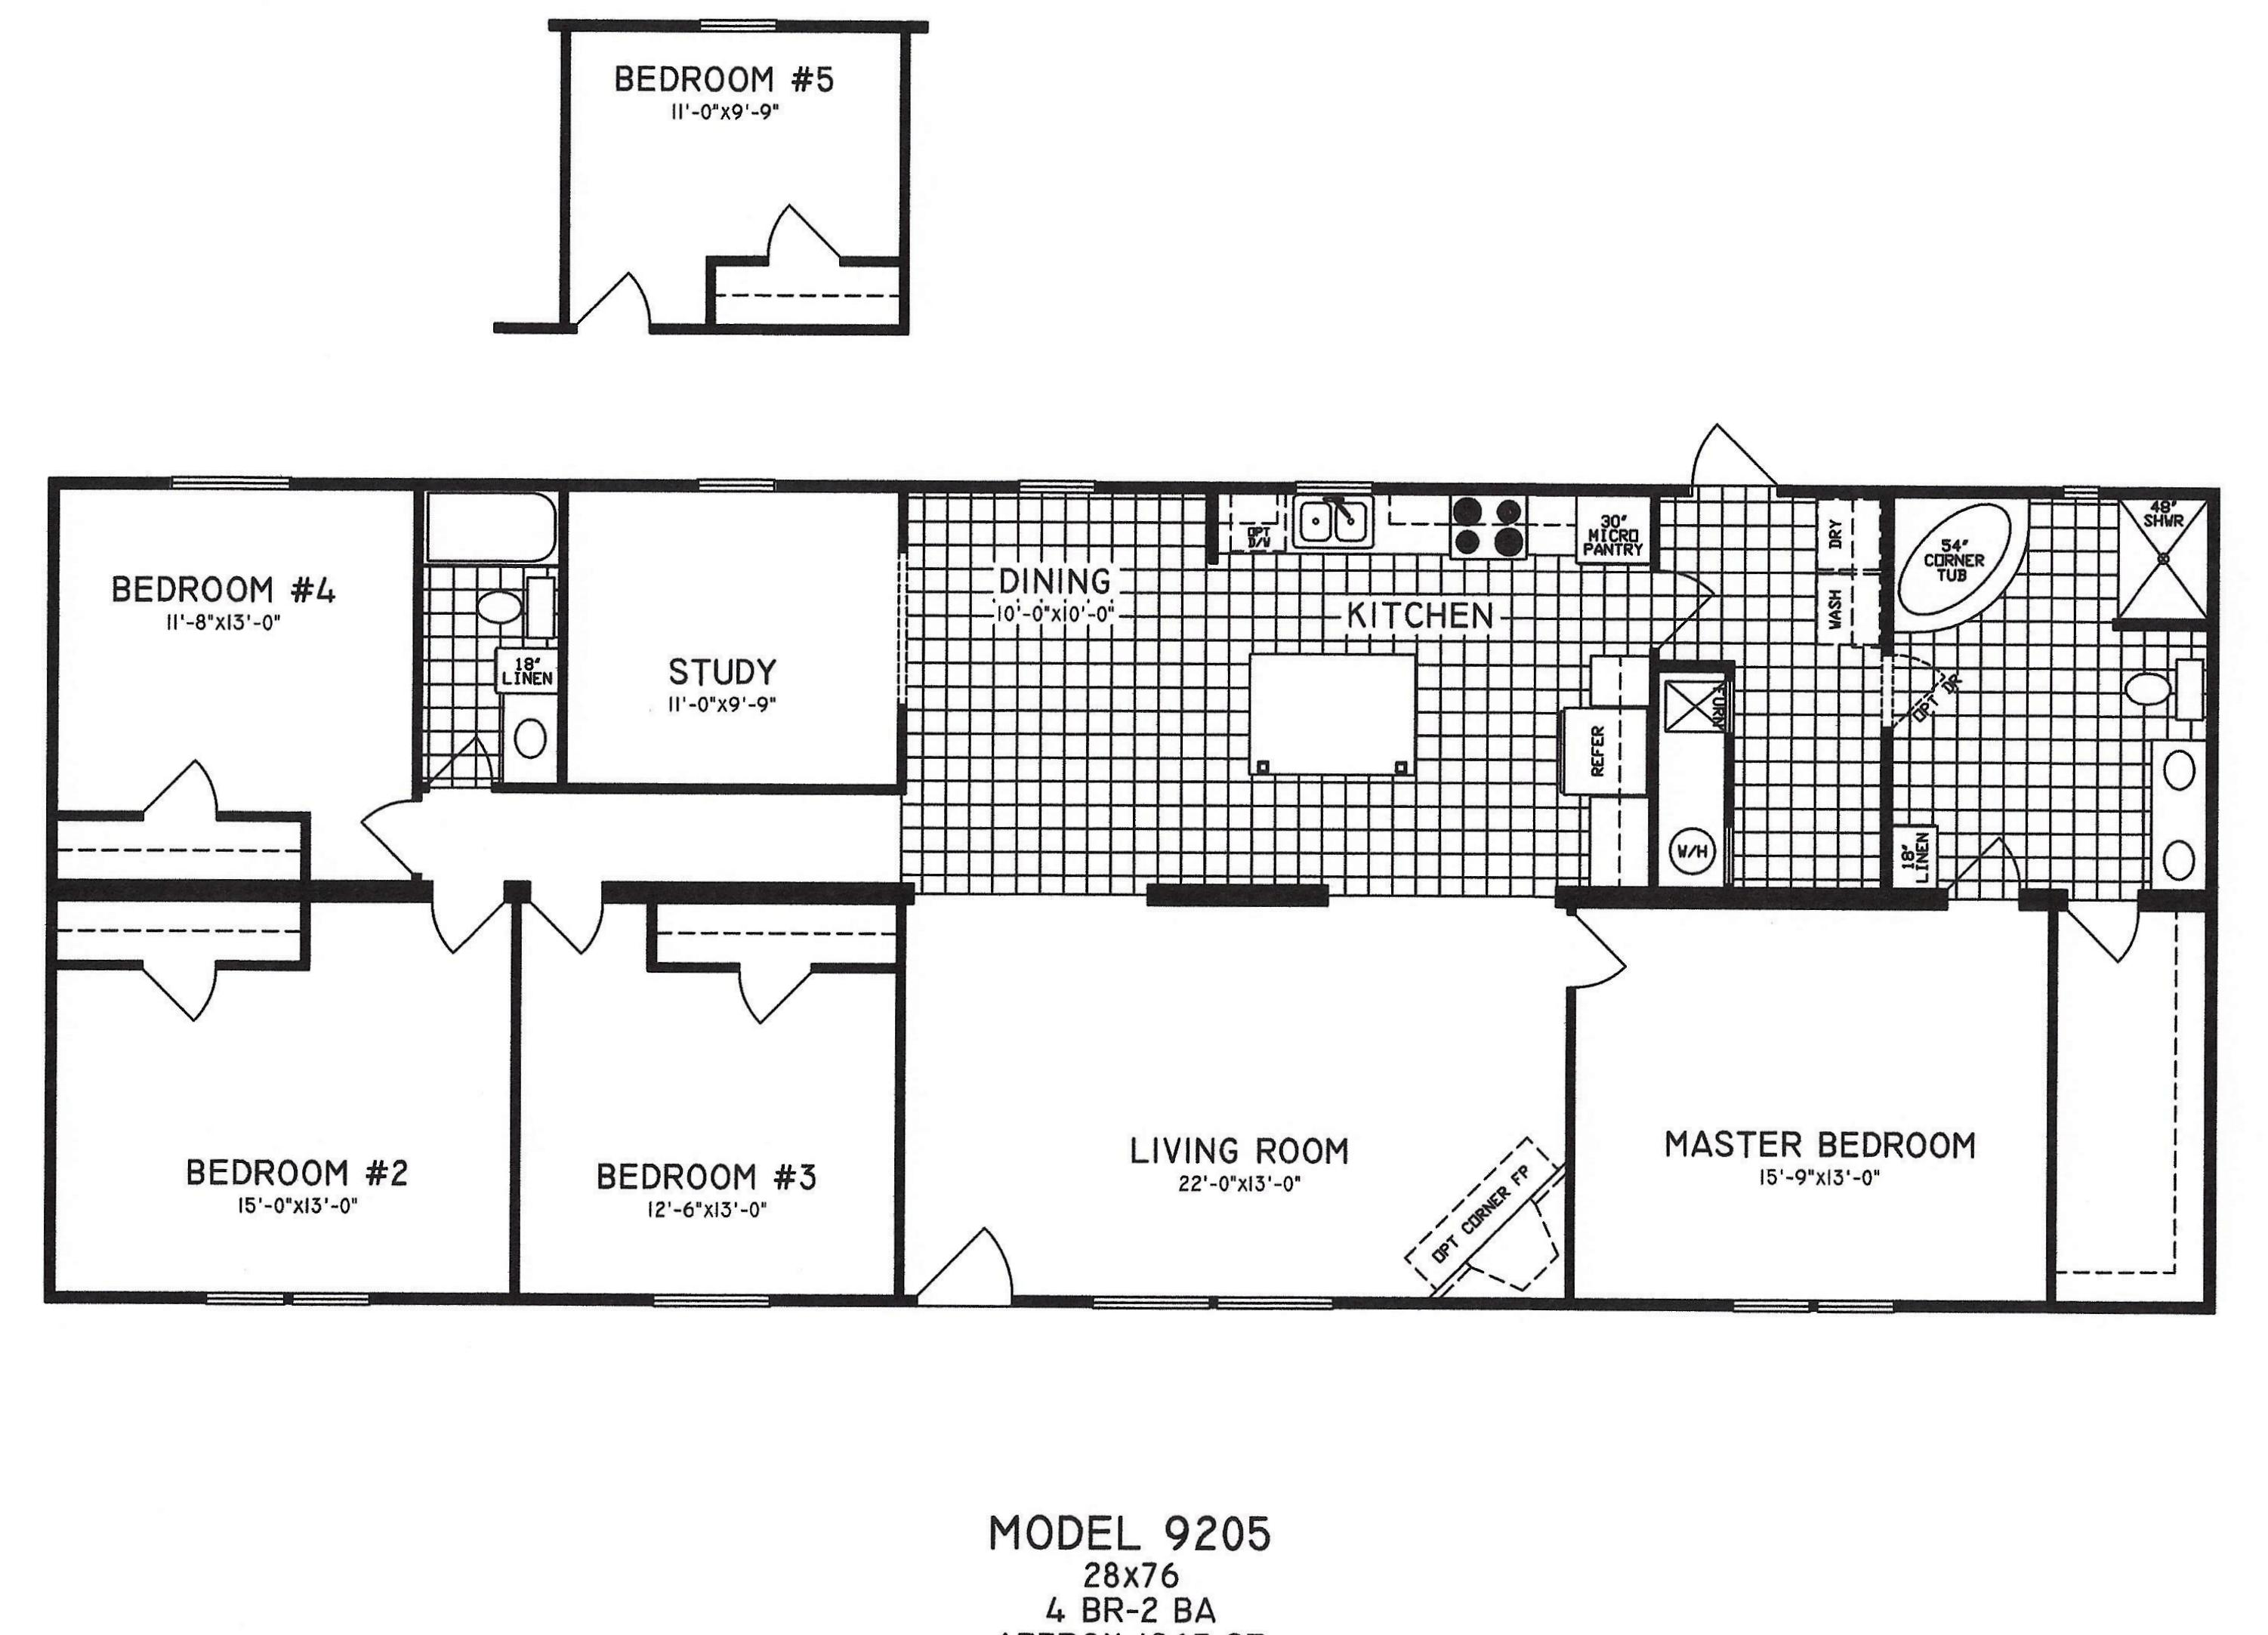 4 bedroom floor plan c 9205 hawks homes manufactured for Mobile home house plans